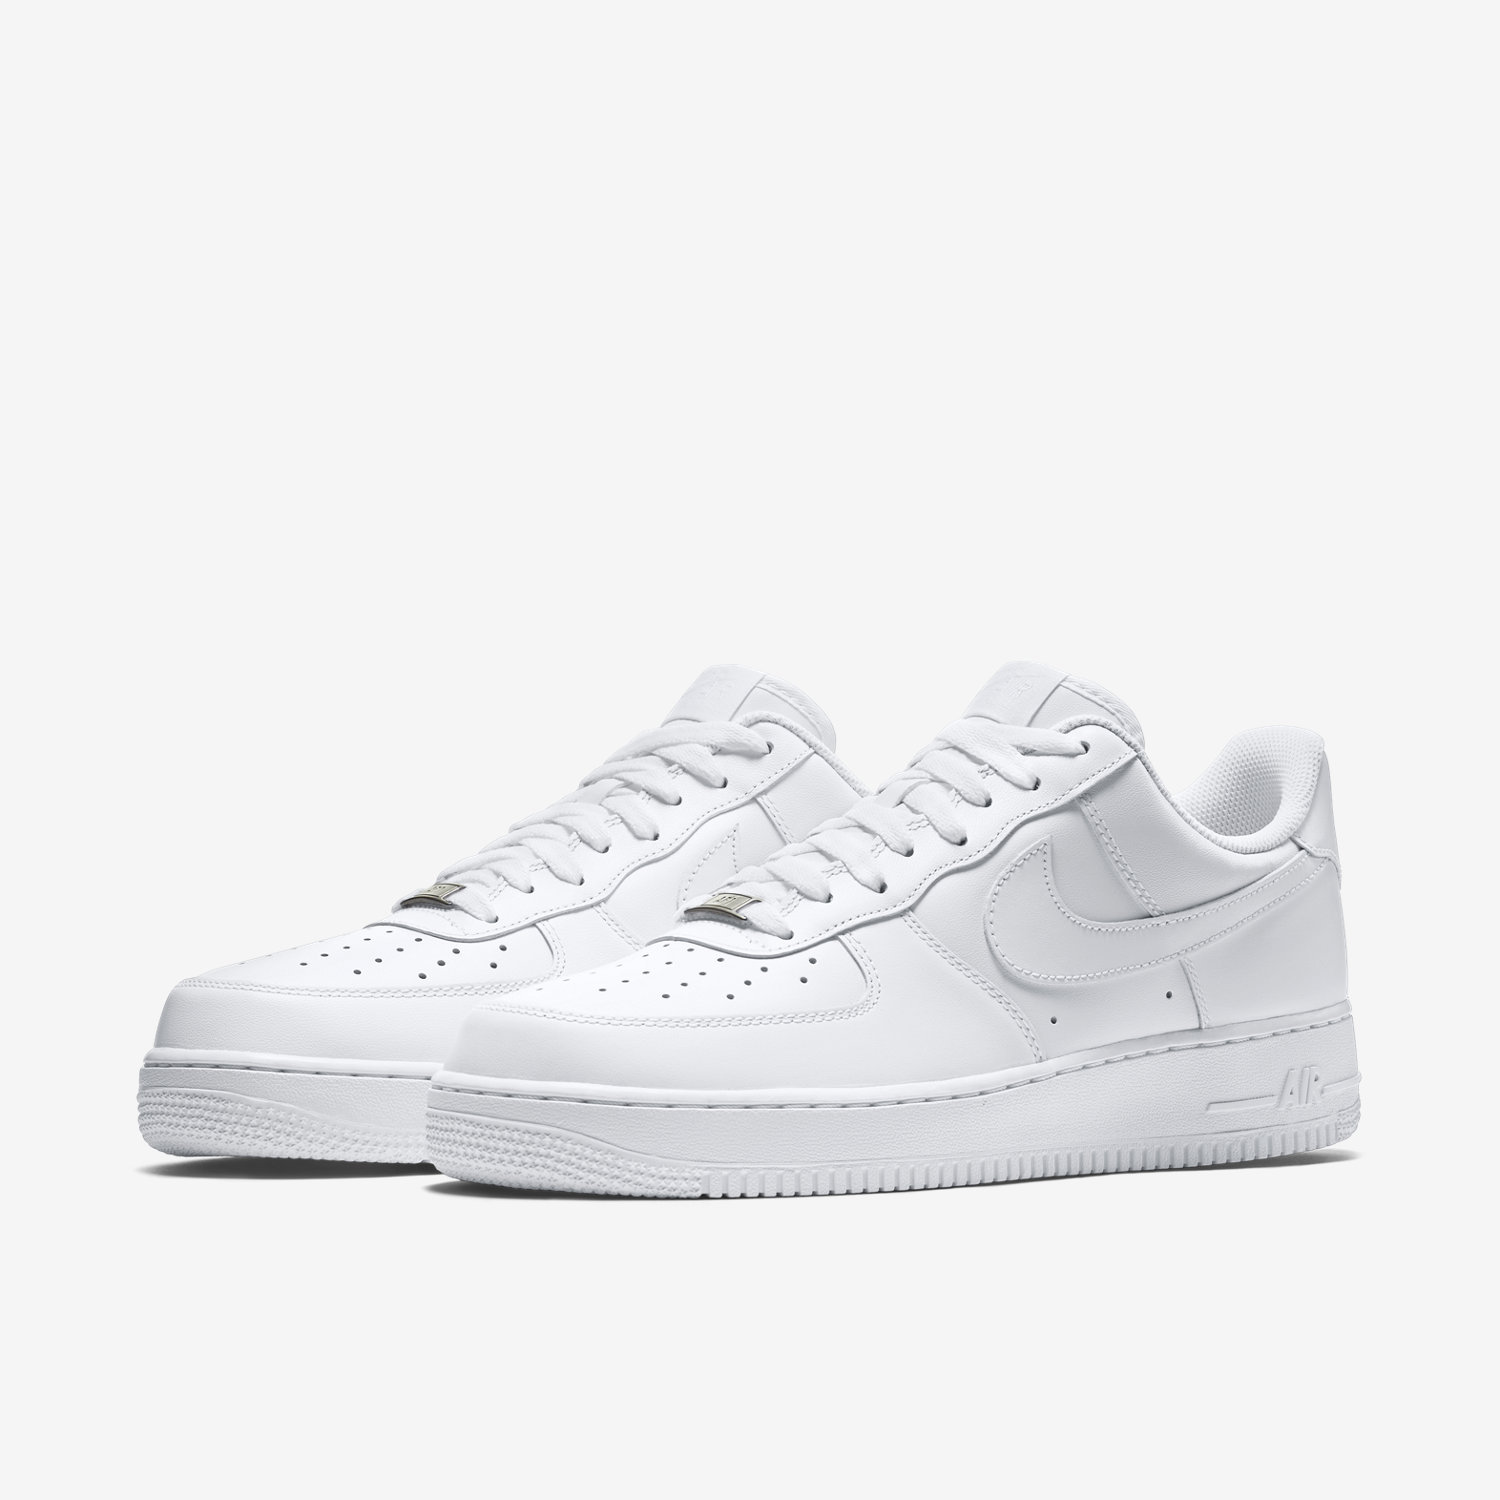 Force 1Nike's Of Forgotten White Air The History On hxtsdCBoQr